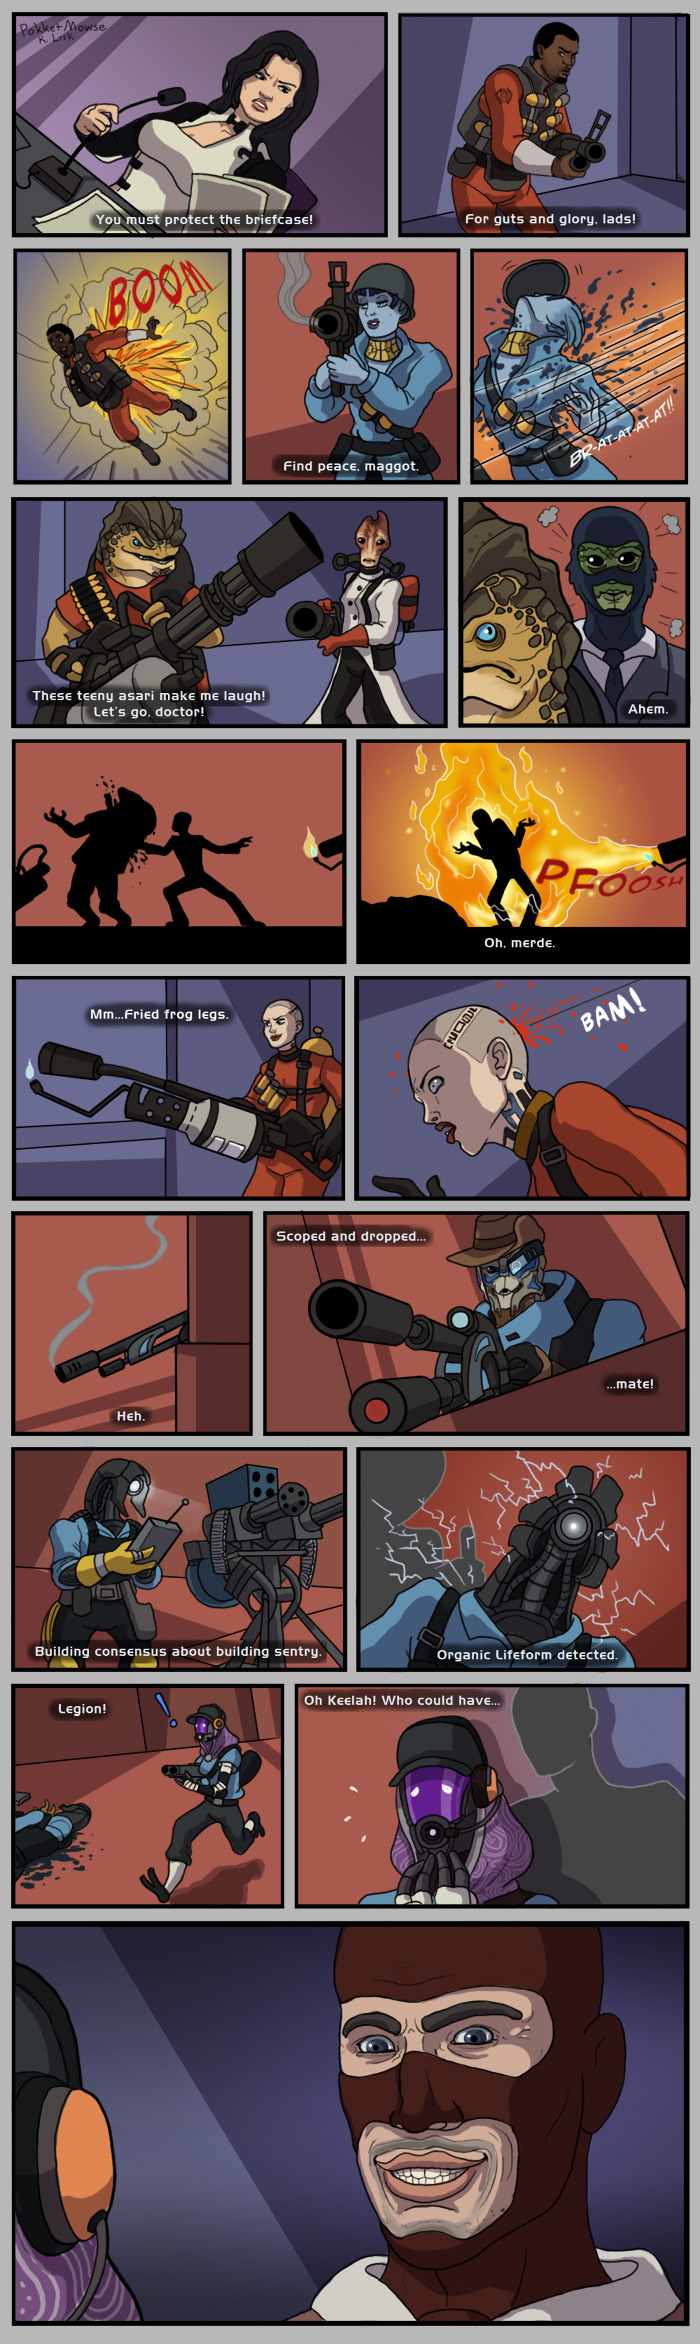 Pictures that make you lol - Page 3 Team-effect-pokketmowse-mass-effect-shephard-spy-team-fortress-2-pyro-jack-miranda-tali-scout-heavy-sniper-medic-engineer